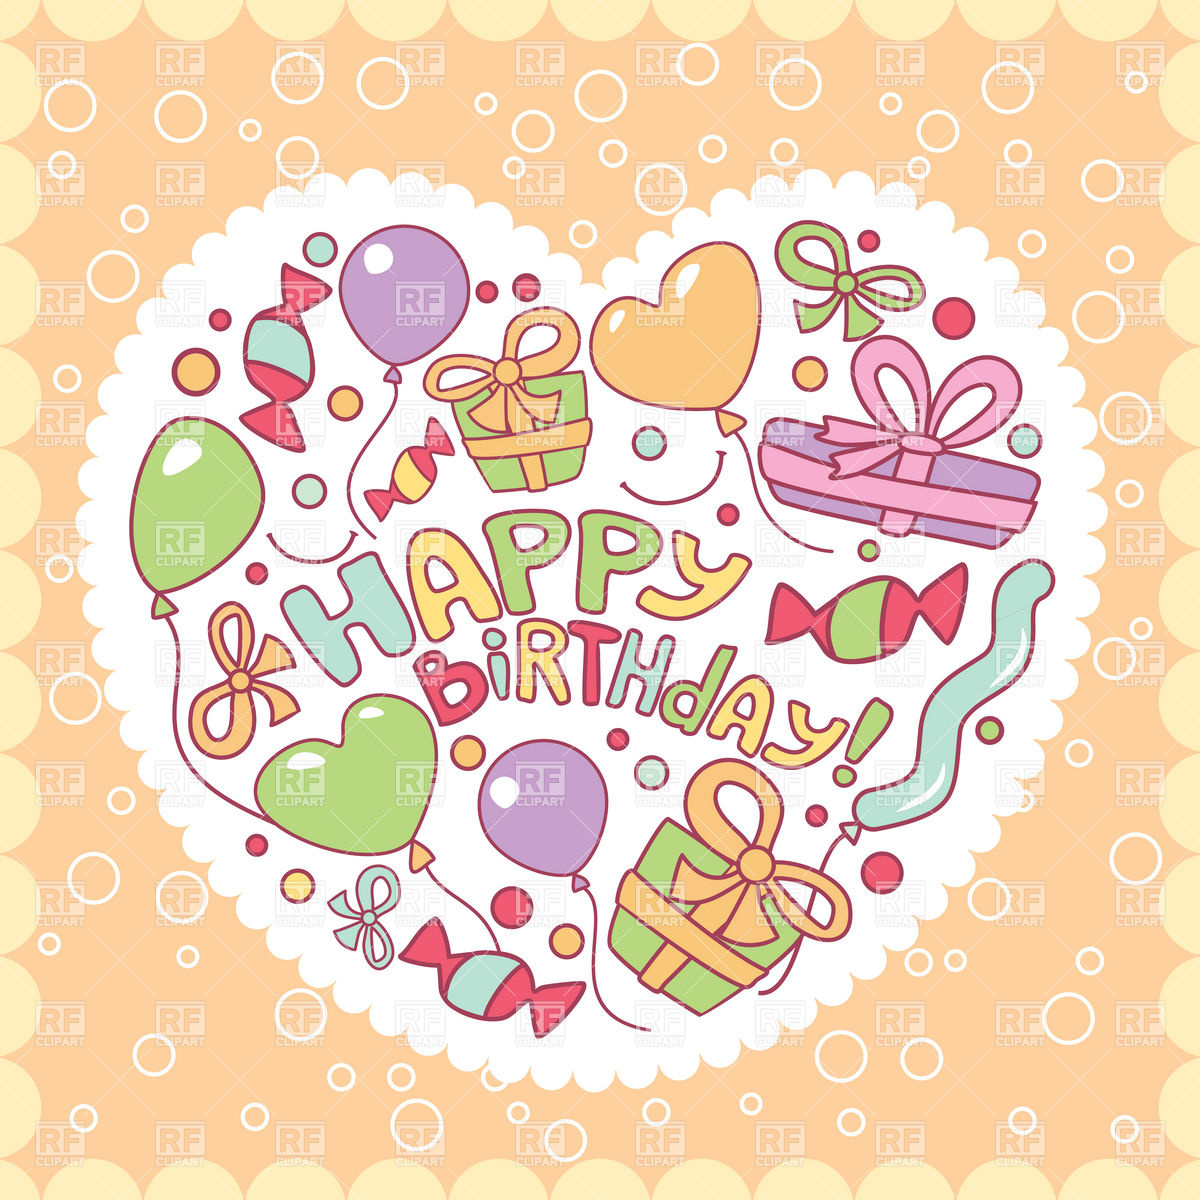 free clipart birthday wishes ; happy-birthday-greeting-card-with-gifts-and-balloons-Download-Royalty-free-Vector-File-EPS-40295